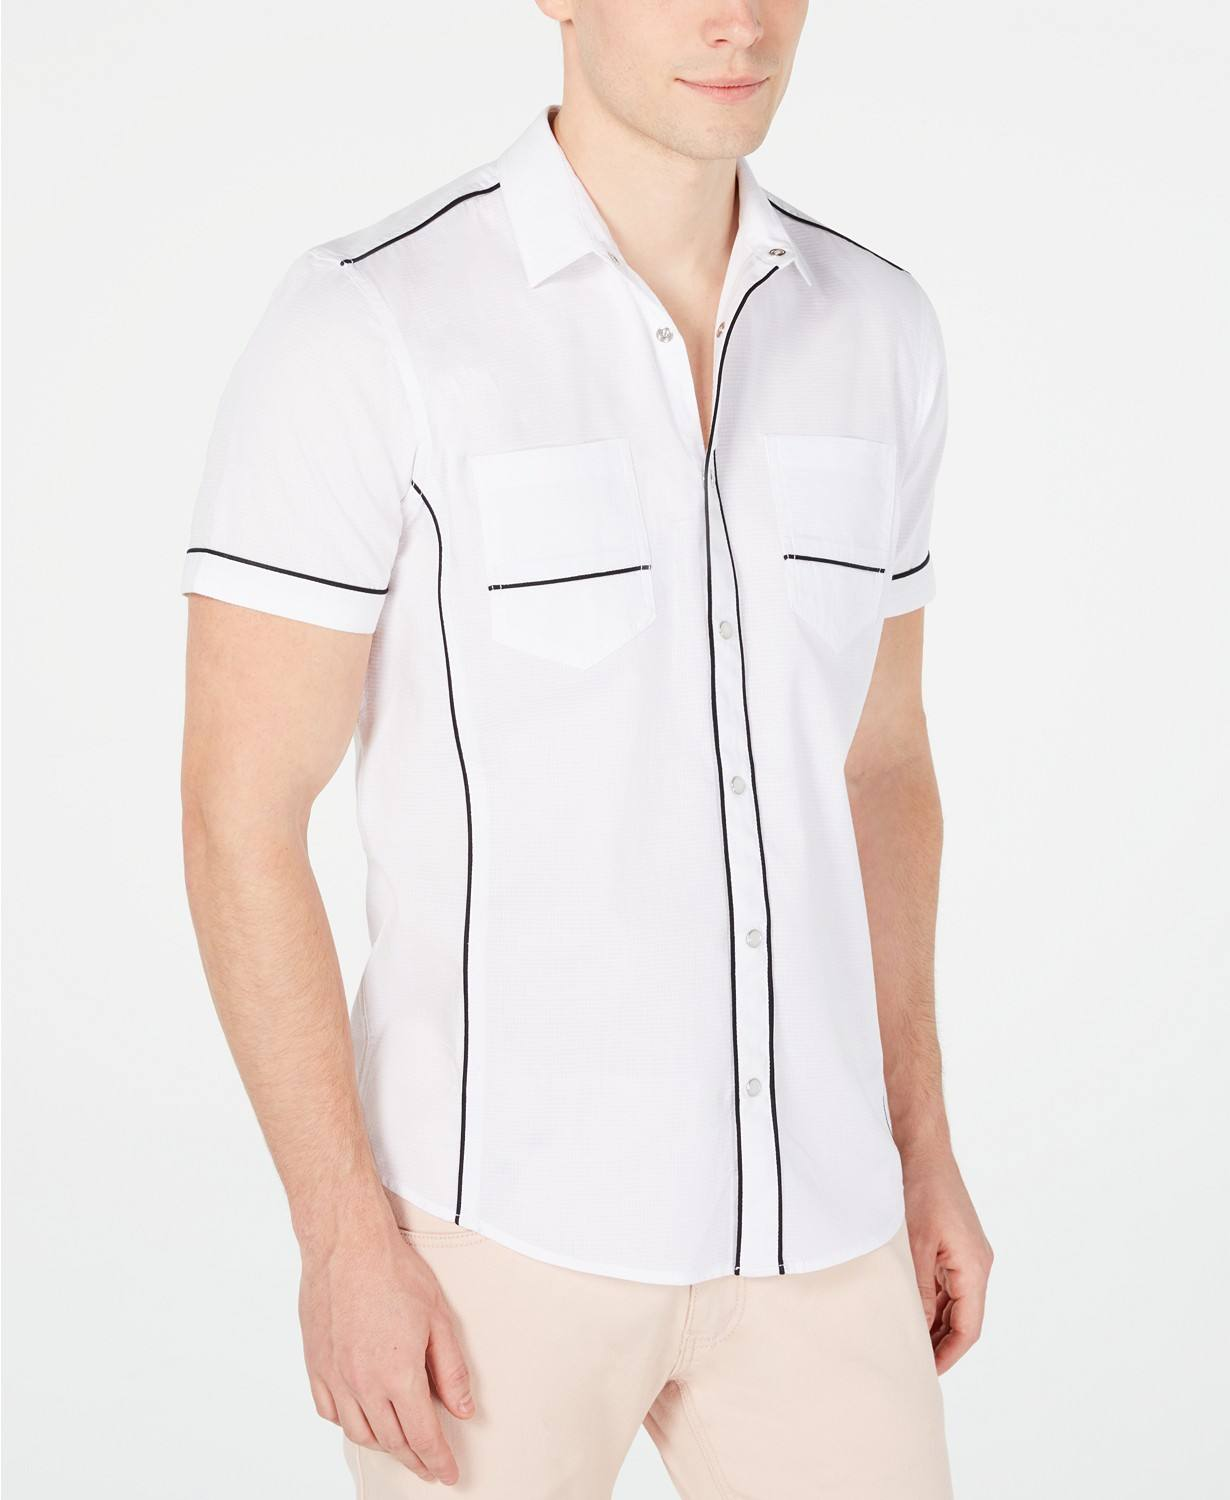 OEM garment factory Summer style Men's Piped Ripstop Shirt in short sleeves